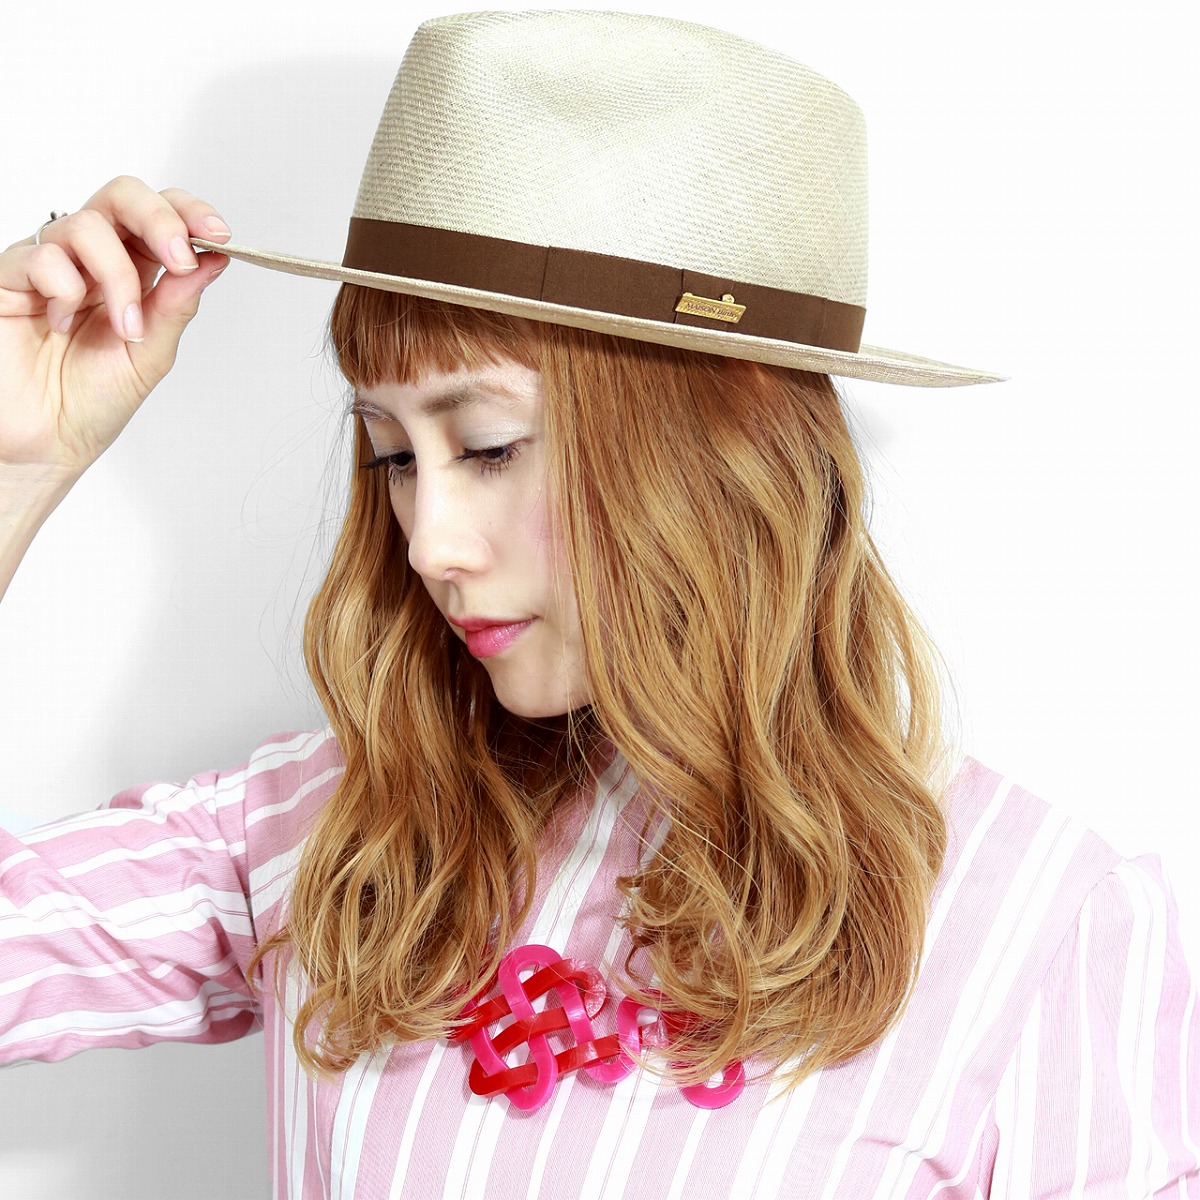 18d62523 ELEHELM HAT STORE: It is gift present lapping for free in Shin pull plain  fabric MAISON Birth hat Lady's straw hat size adjustment possibility /  beige ...